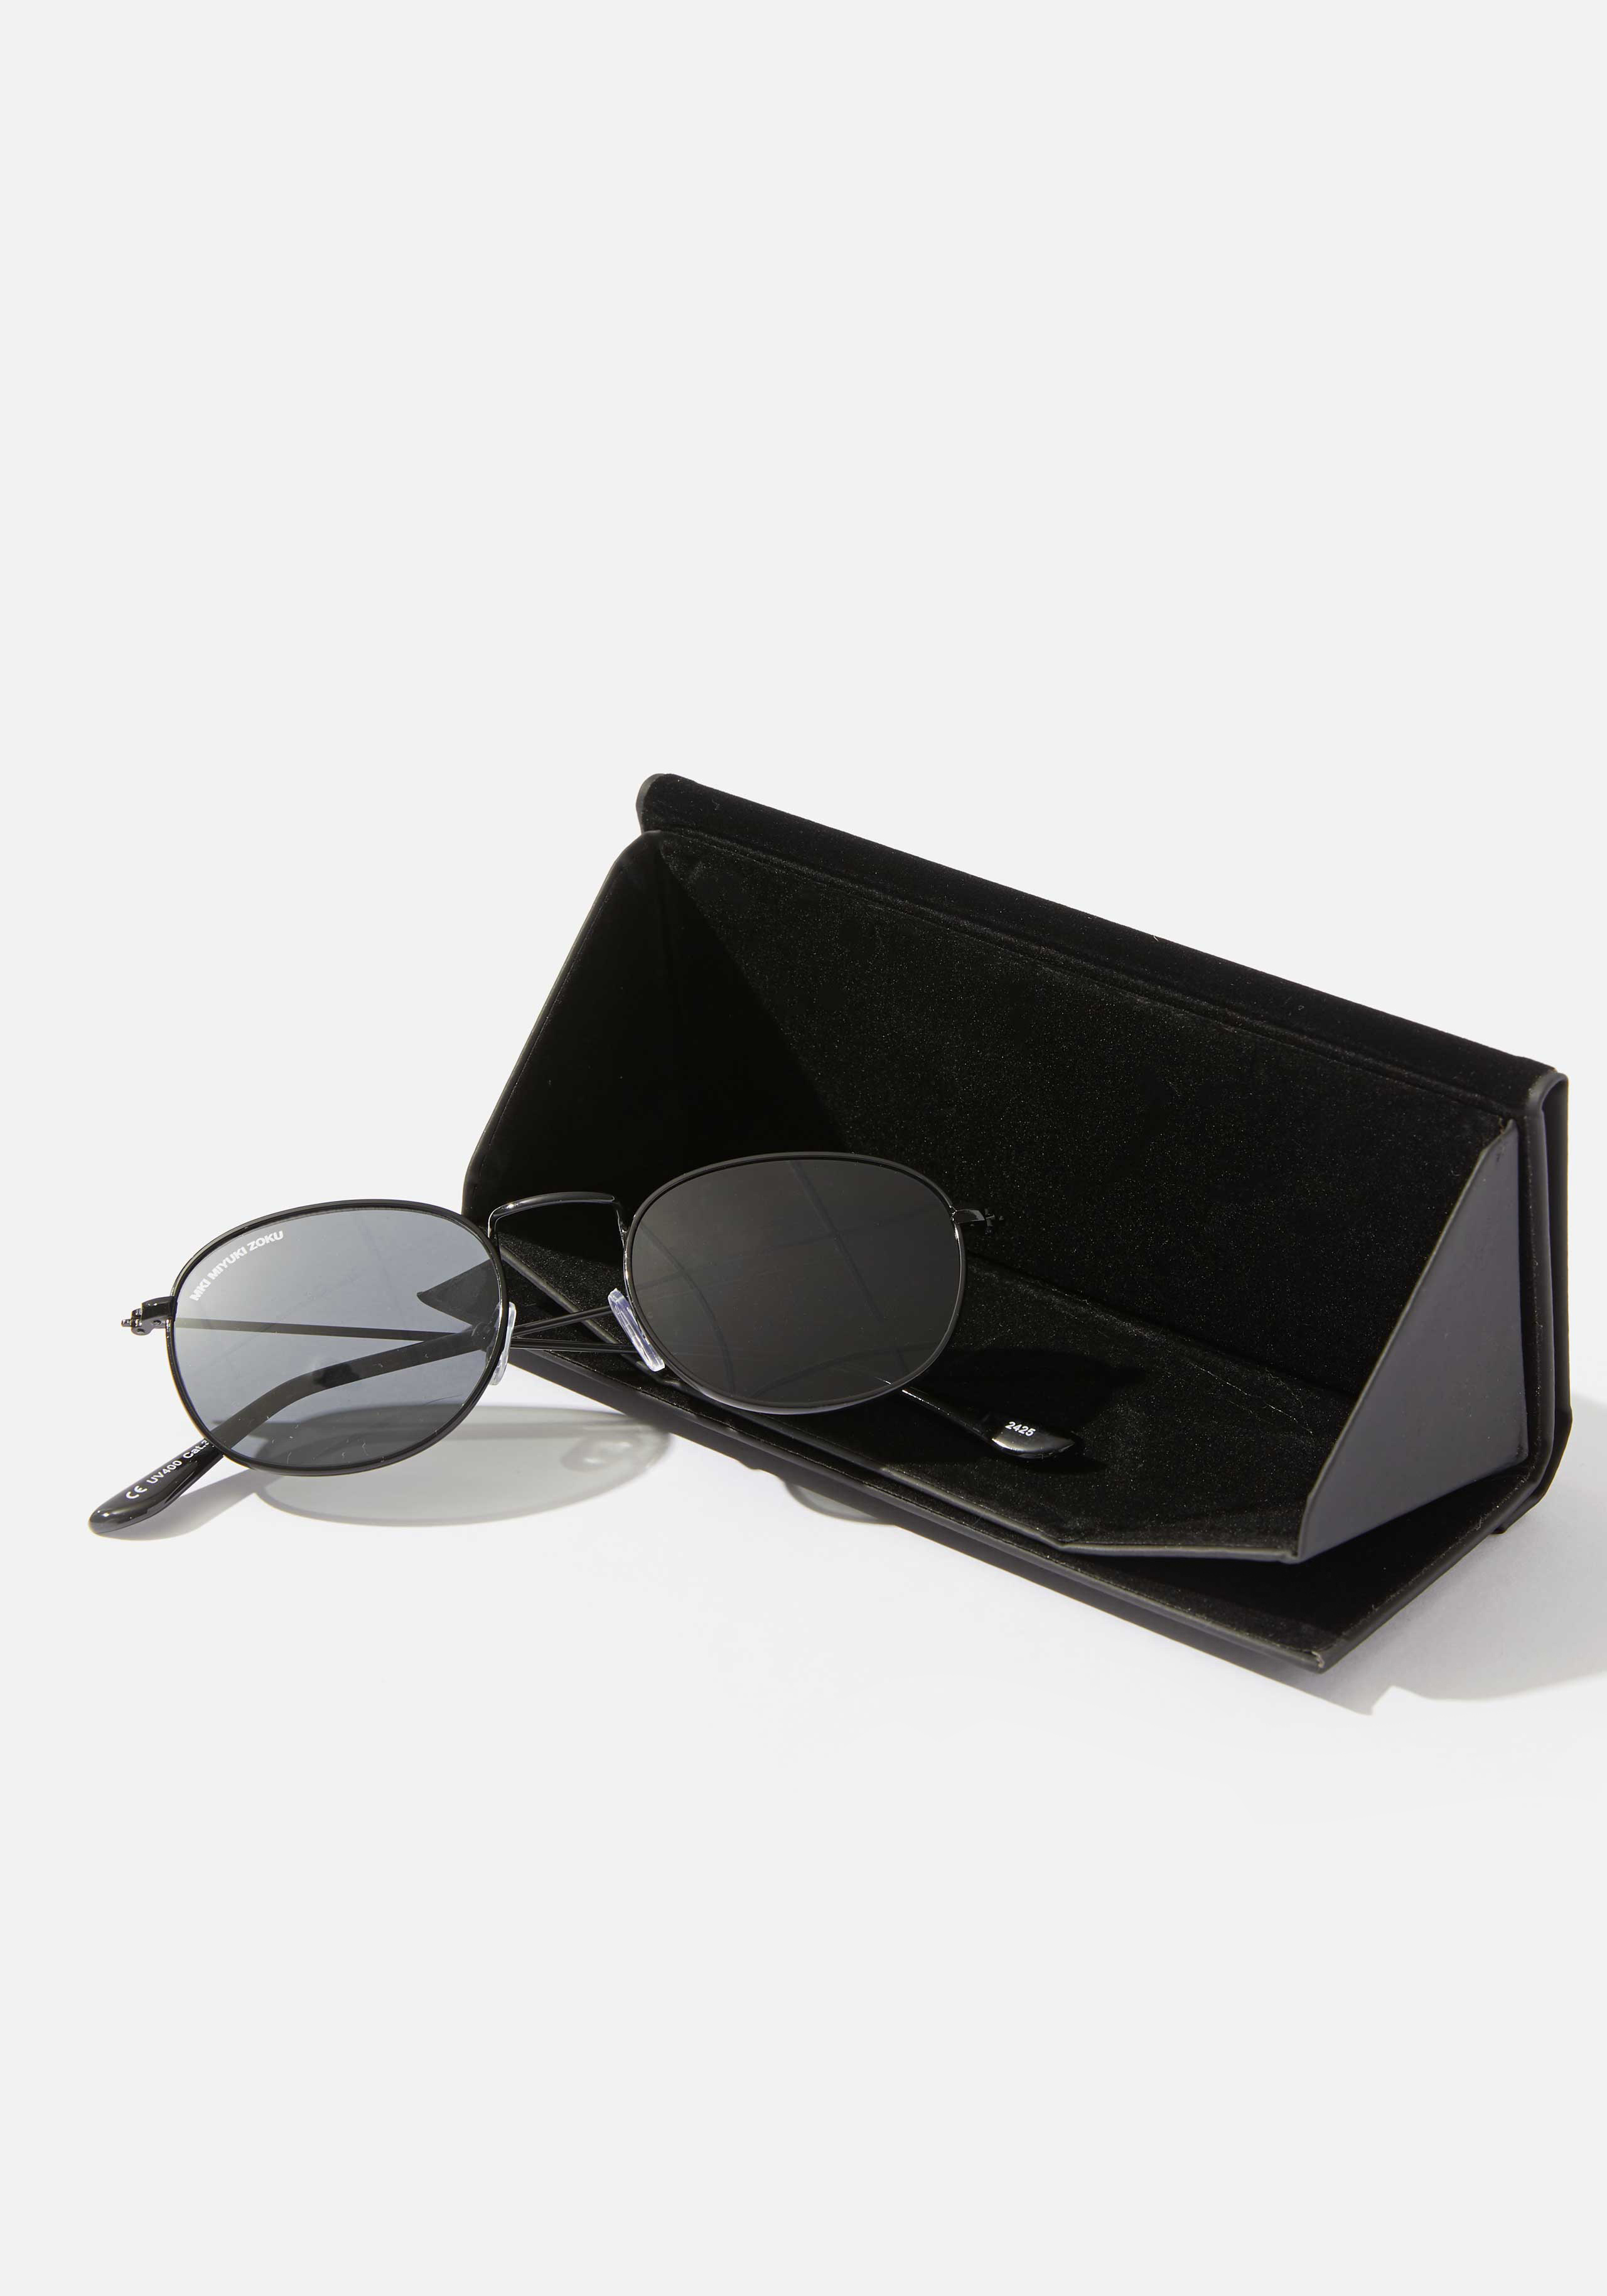 mki metal round sunglasses 4